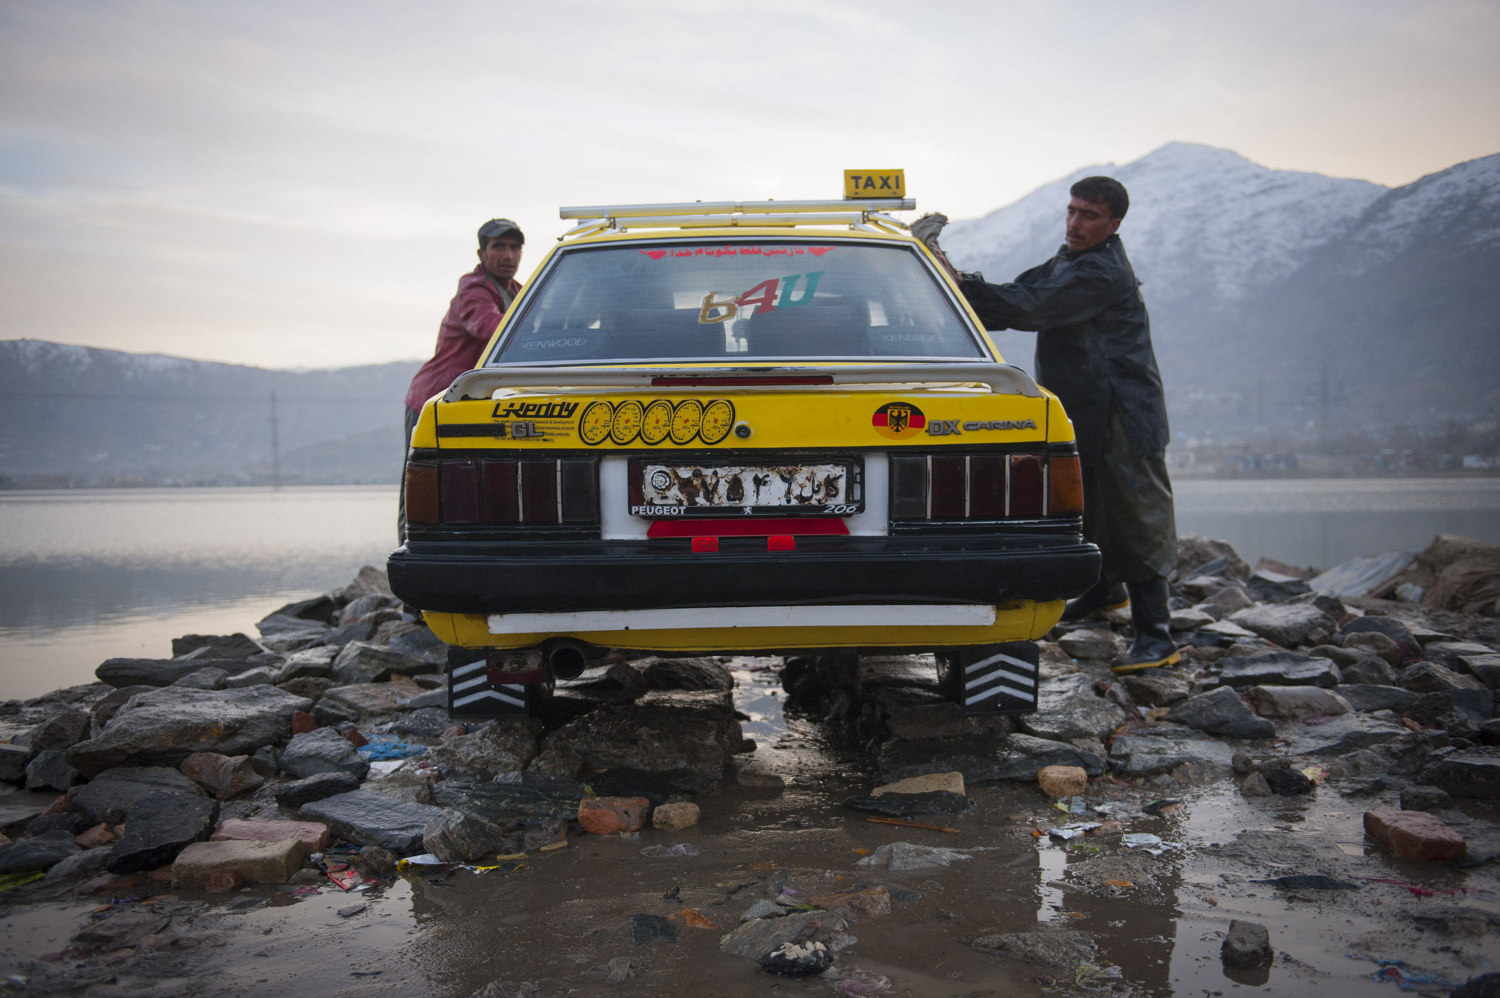 A car wash in the Kart-E Sakhi section of Kabul Afghanistan. It costs 150 AFS (roughly 3.00 USD) to wash a car in Kabul. The workers earn about 600 AFS or 12 dollars a day and work year round despite the sub-zero temperatures.